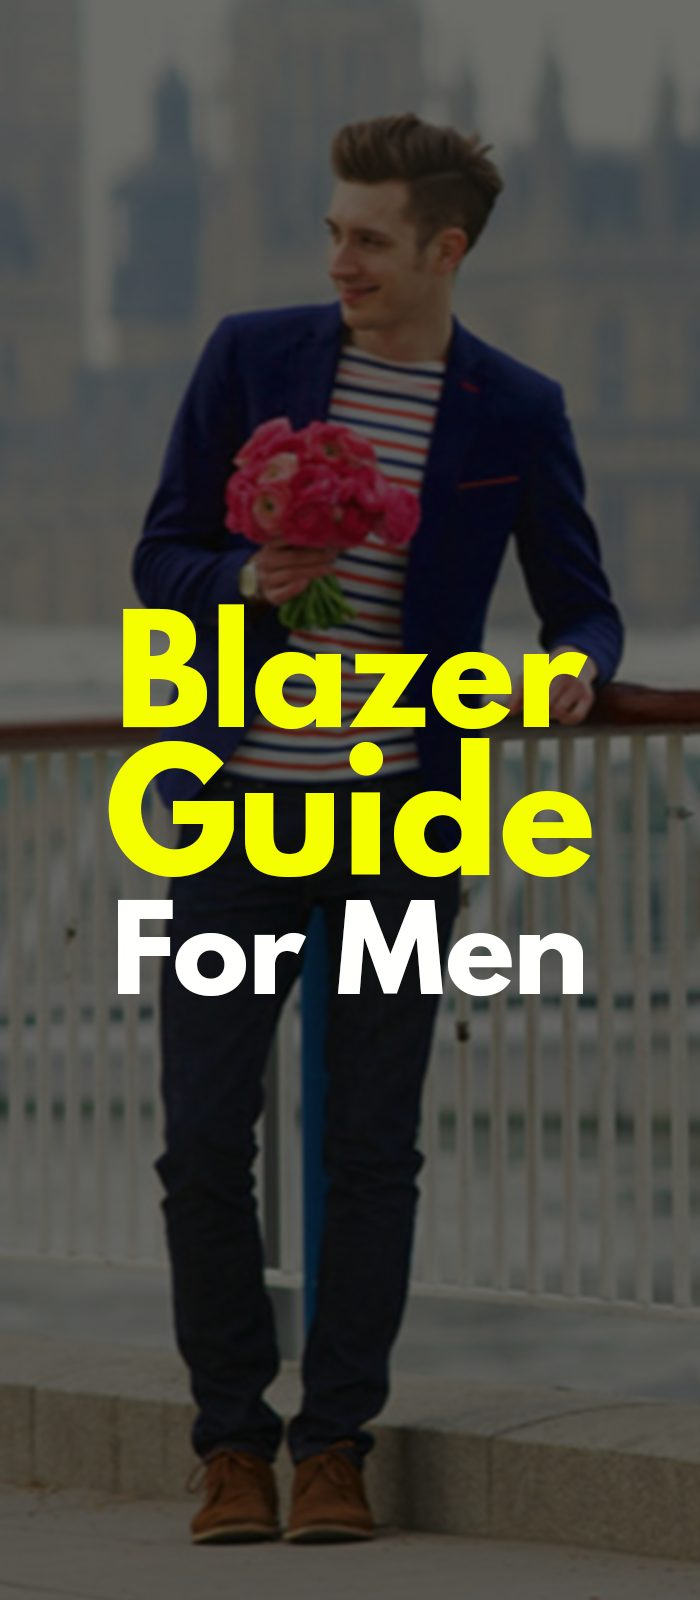 Blazer Guide For Men